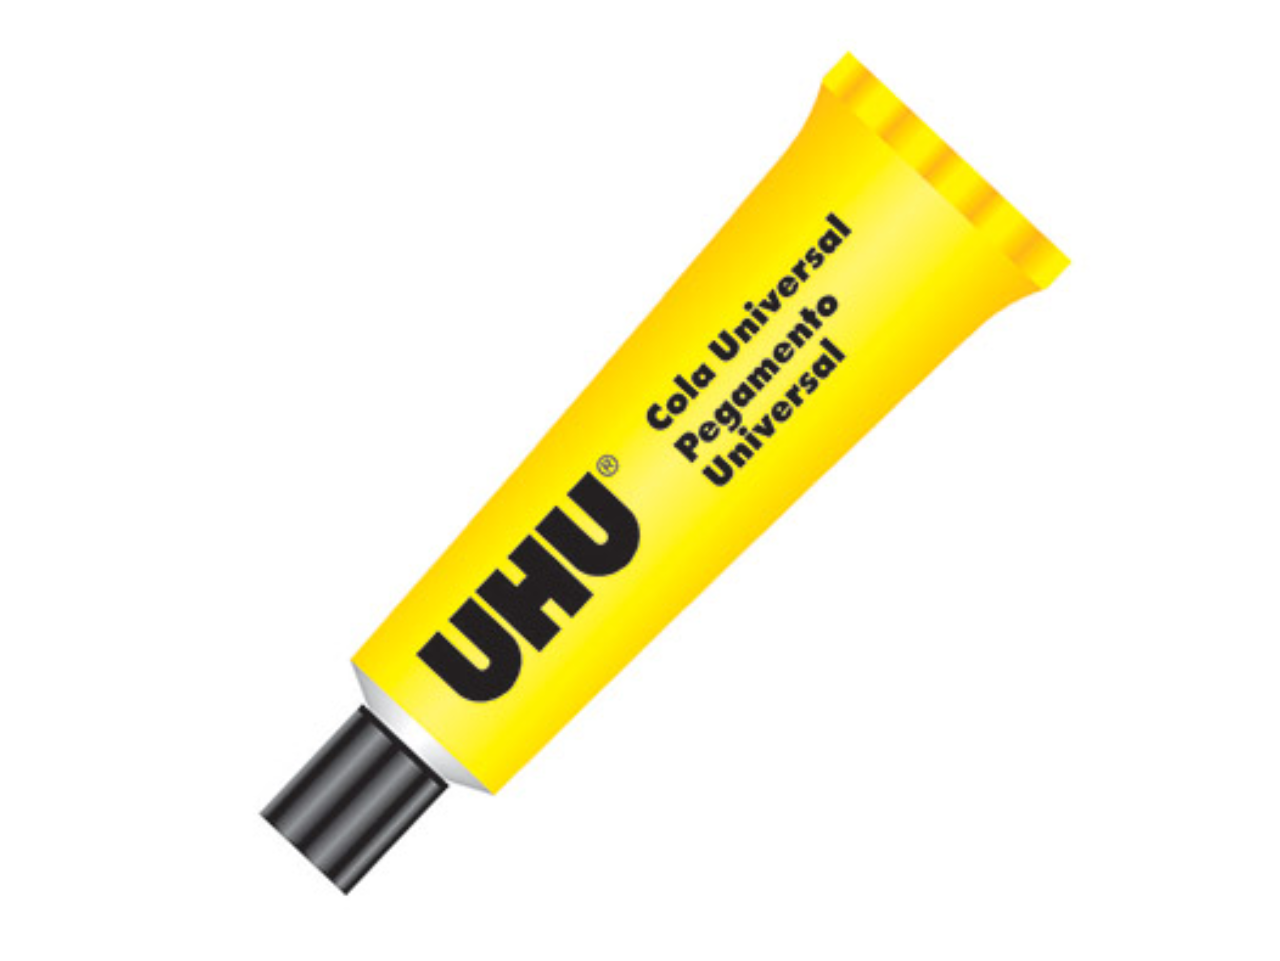 UHU all purpose adhesive extra